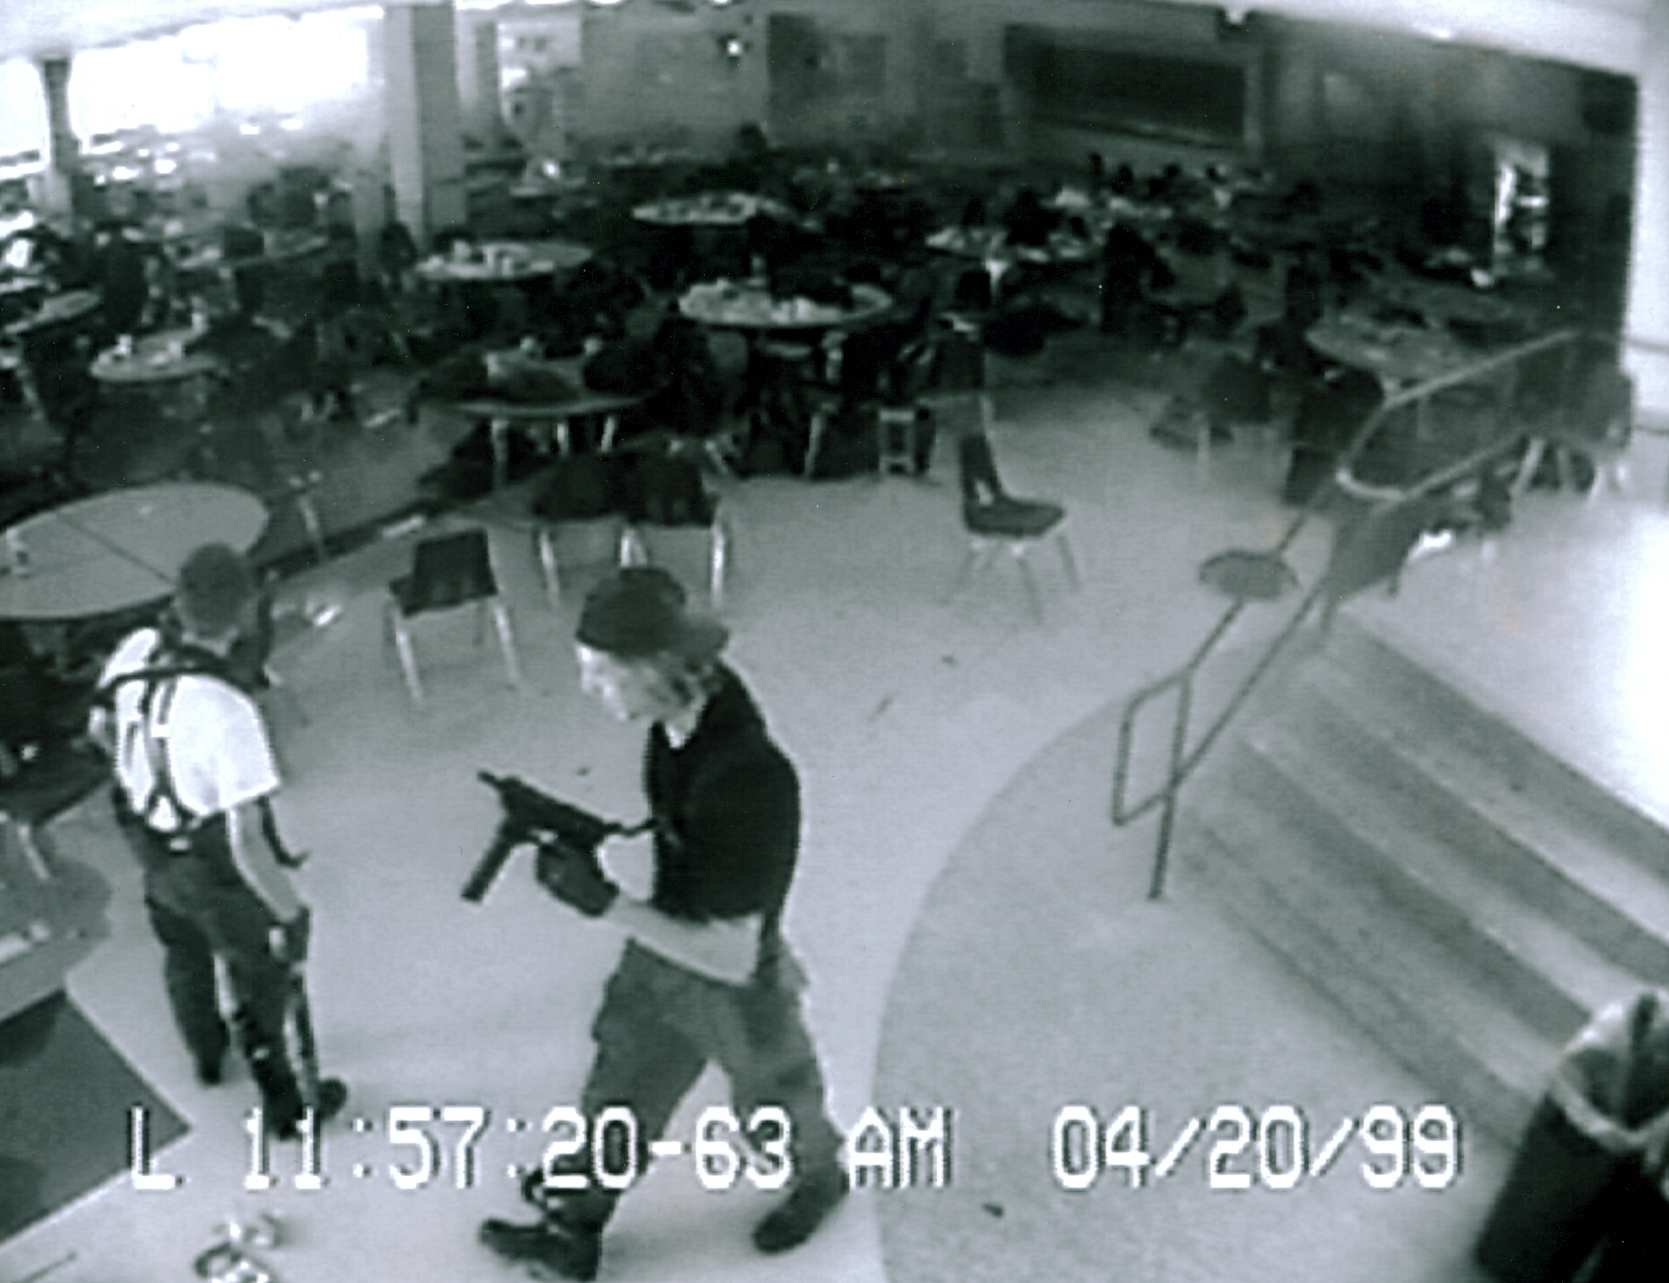 an analysis of the crime rates during the year 1999 and the massacre at columbine high school The columbine high school massacre decreased bond commissioner release rates for  occurring in the year 1999,  k landproperty crime rates in the.